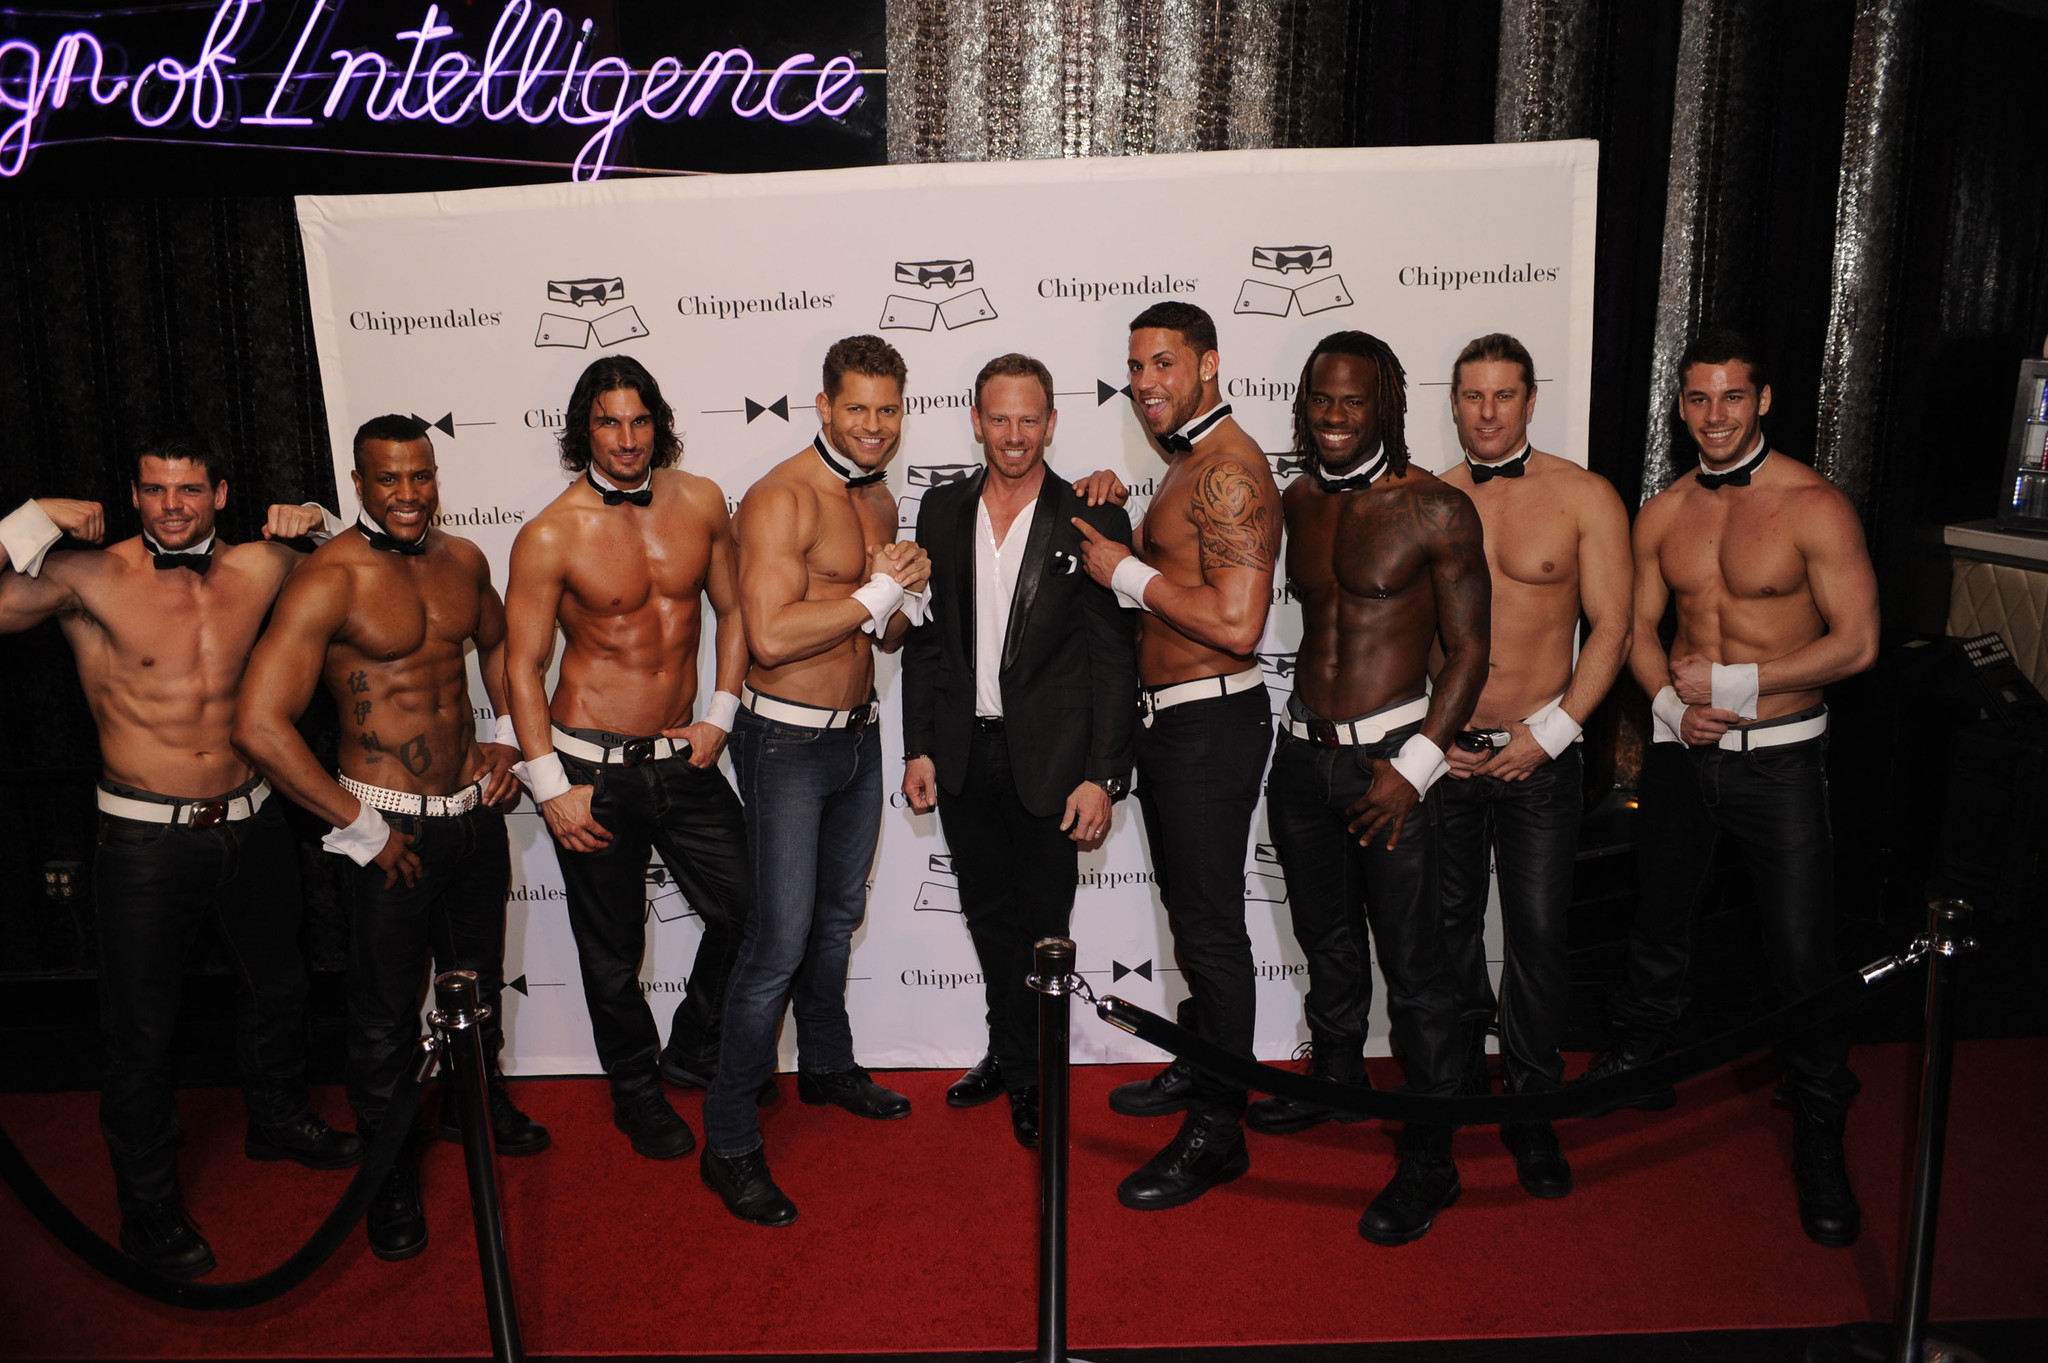 Chippendales open in Miami Beach - Ian Ziering and Chippendales